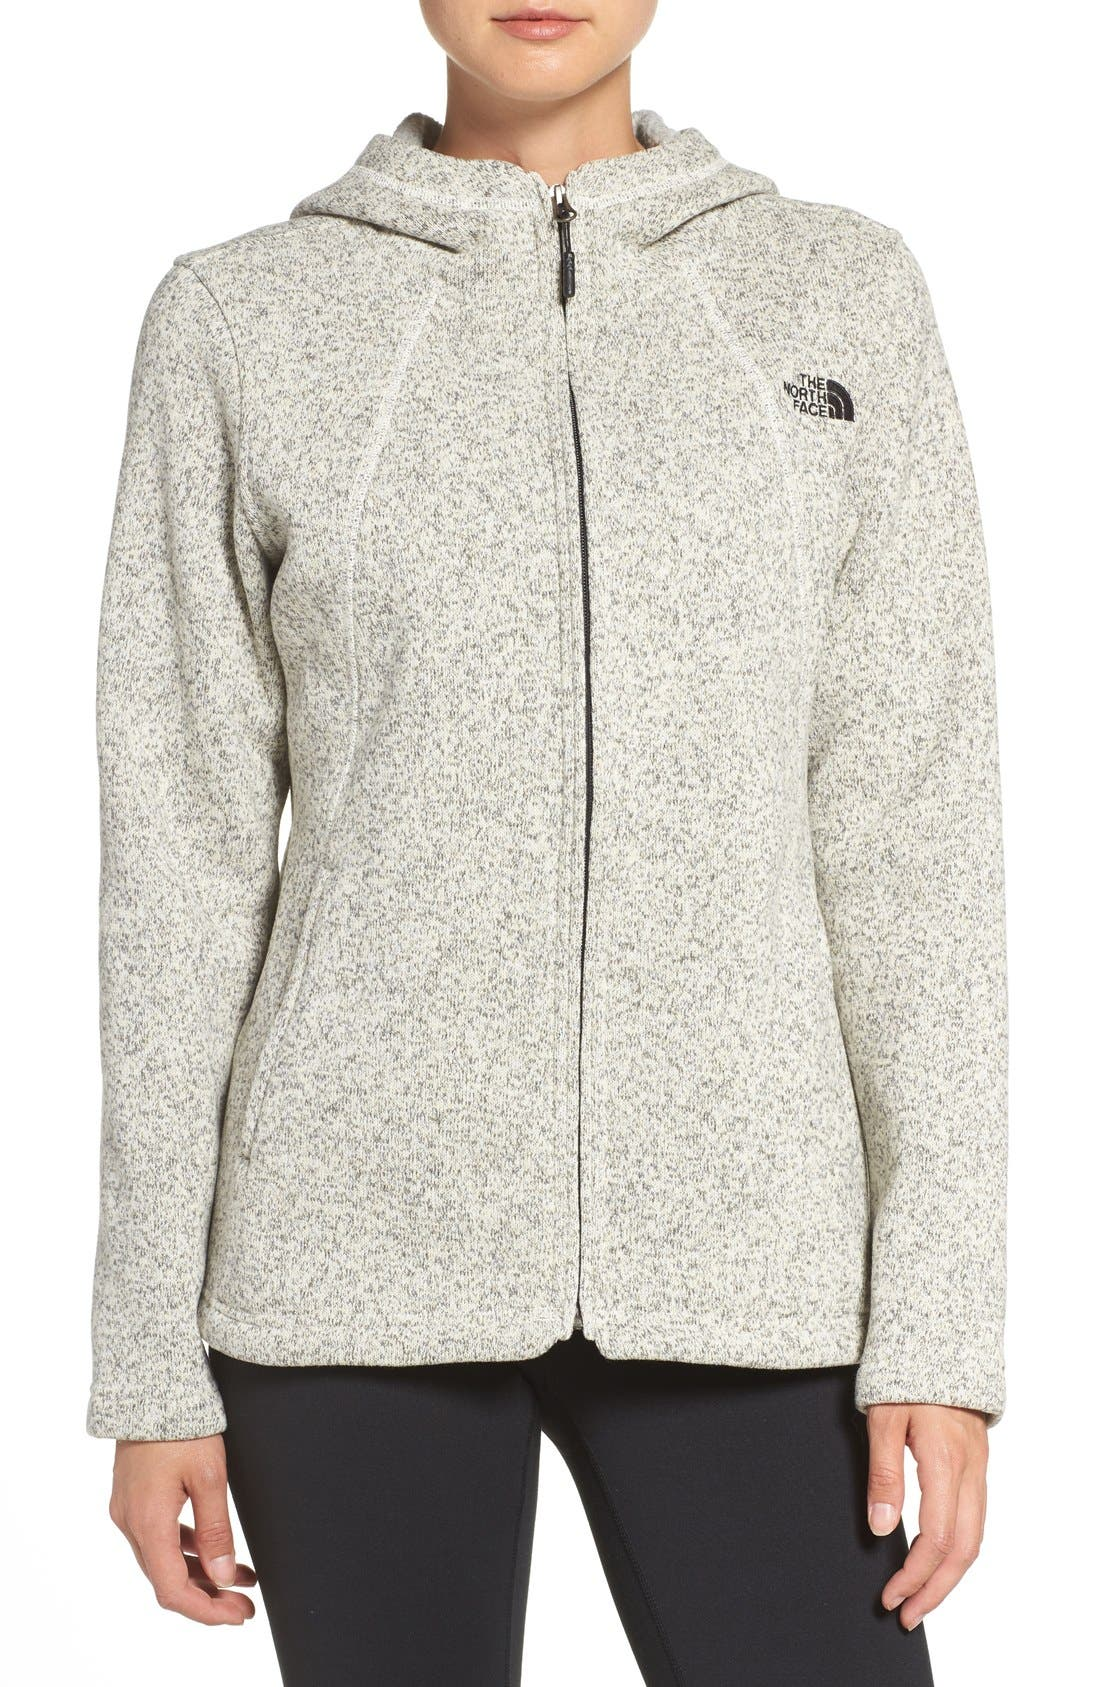 Alternate Image 1 Selected - The North Face 'Crescent' Fleece Jacket